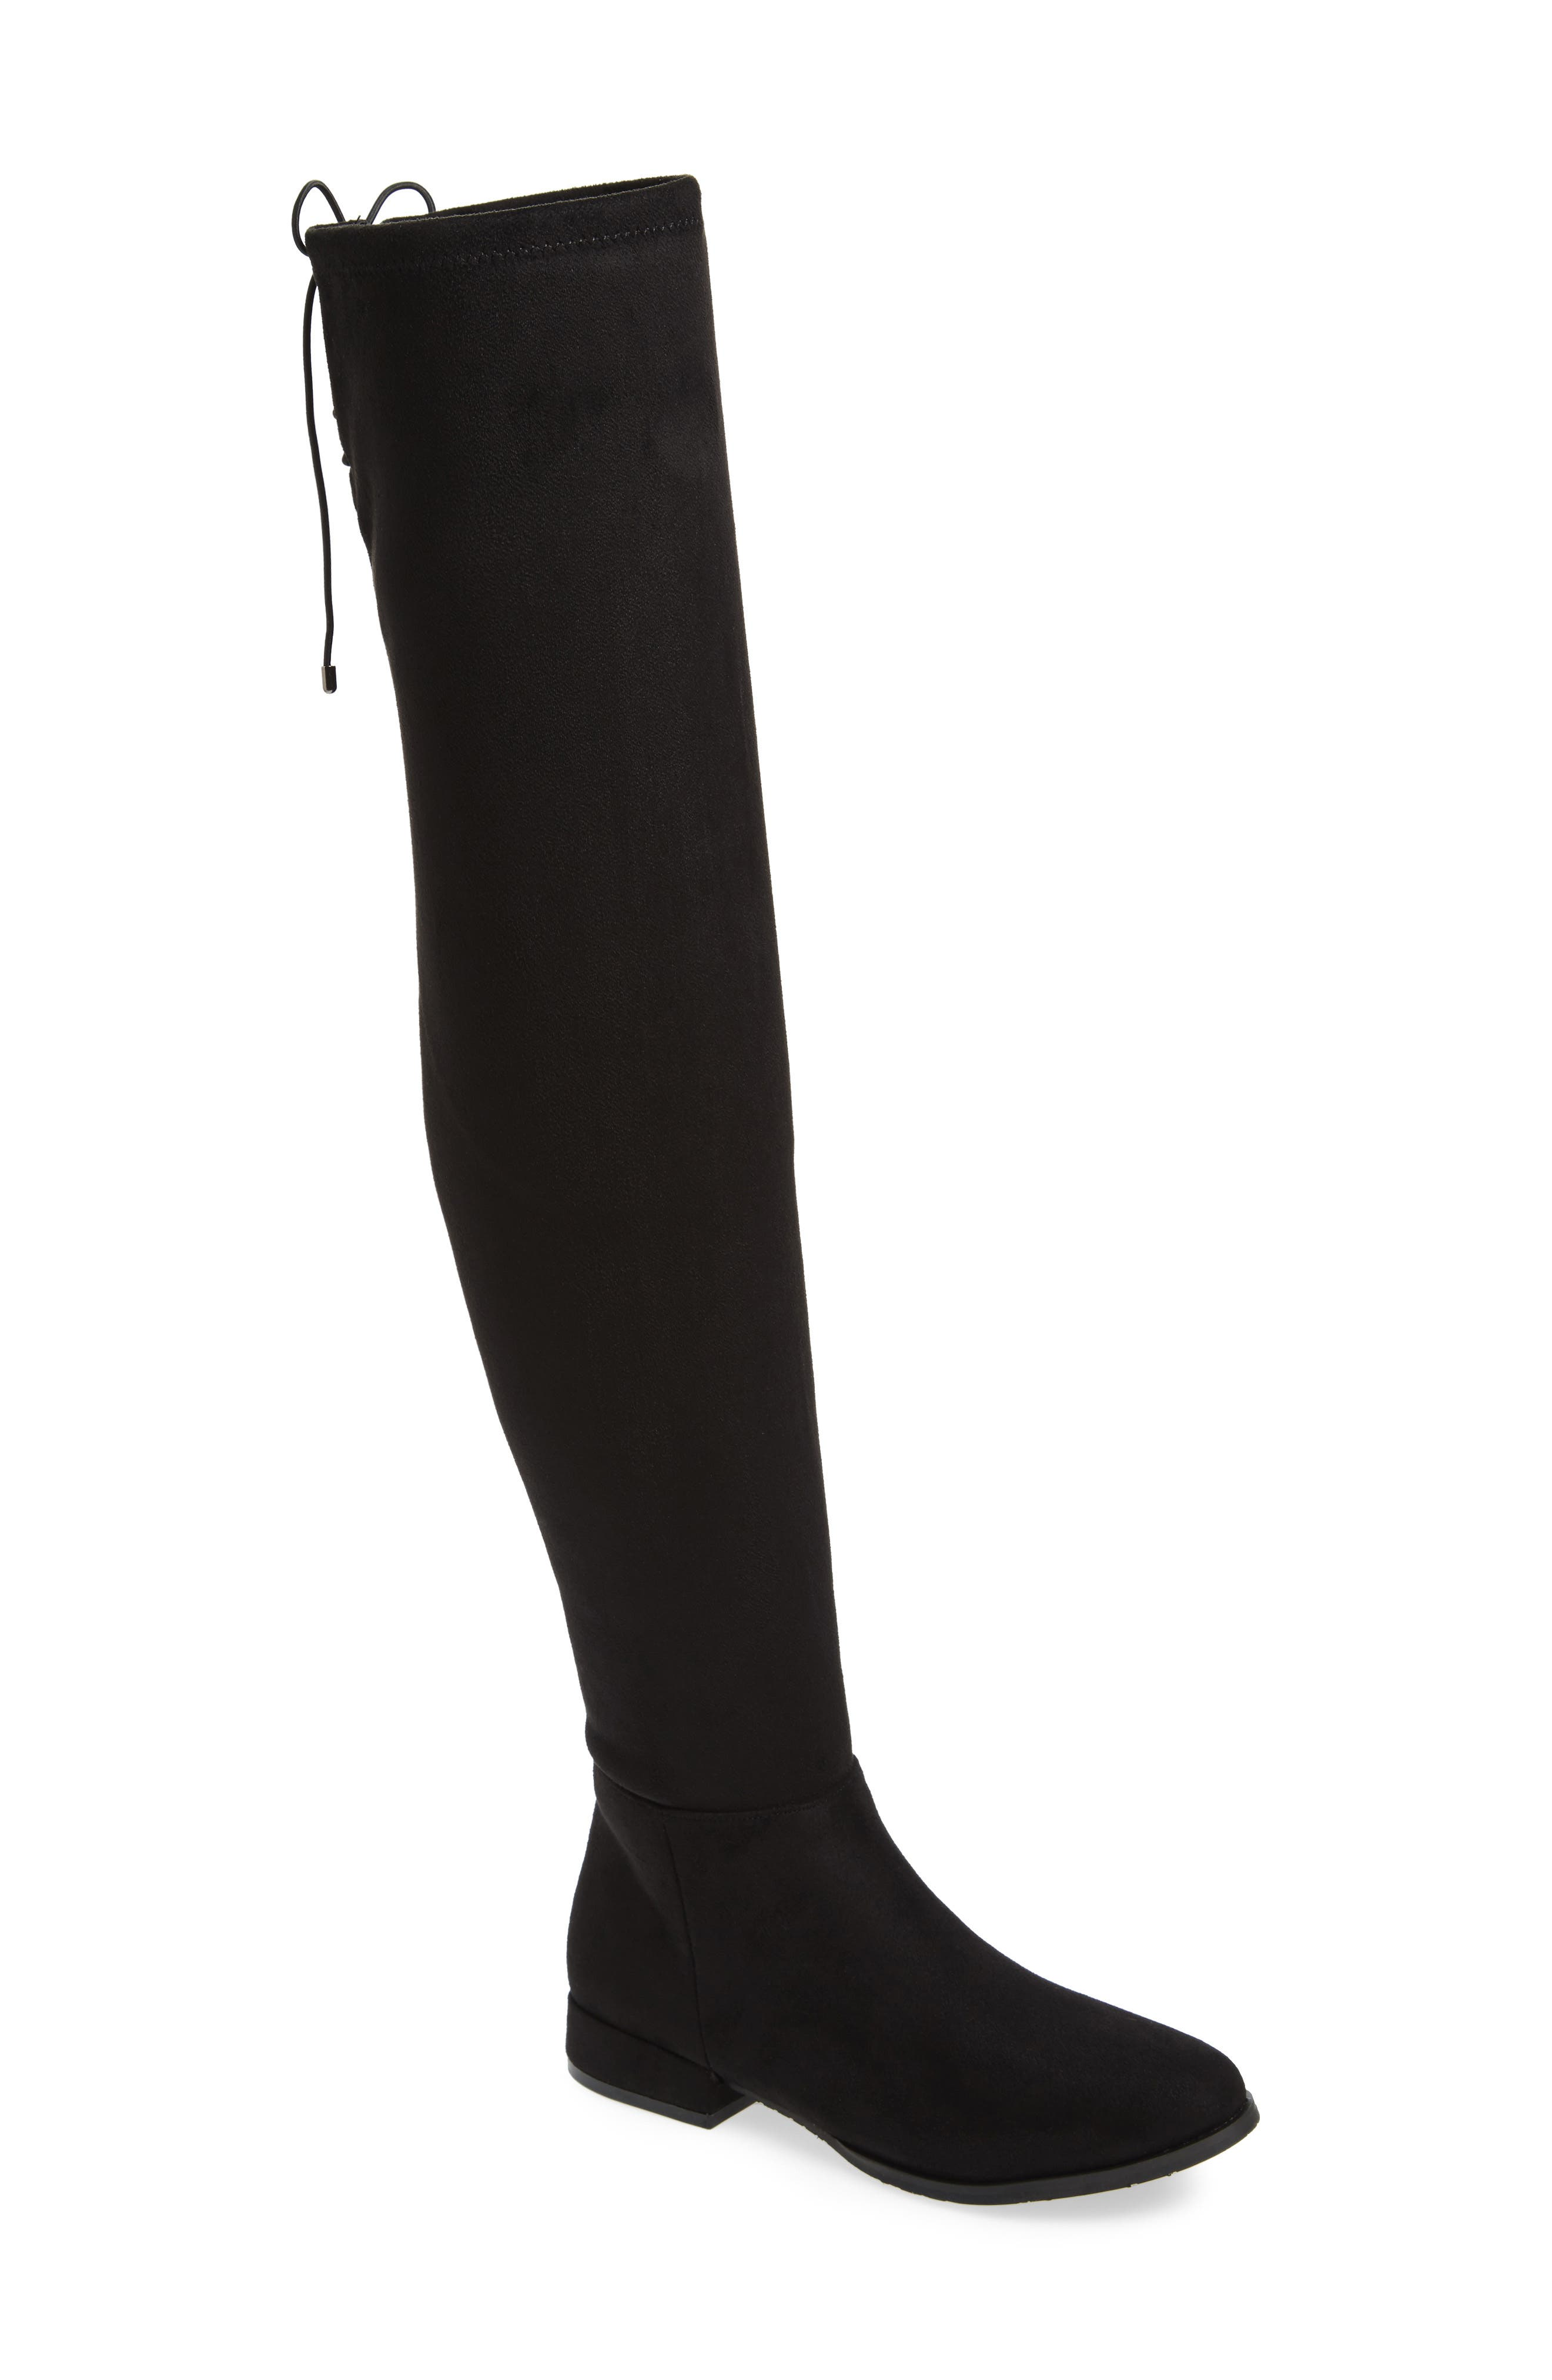 Rashelle Over the Knee Stretch Boot,                             Main thumbnail 1, color,                             Black Suede